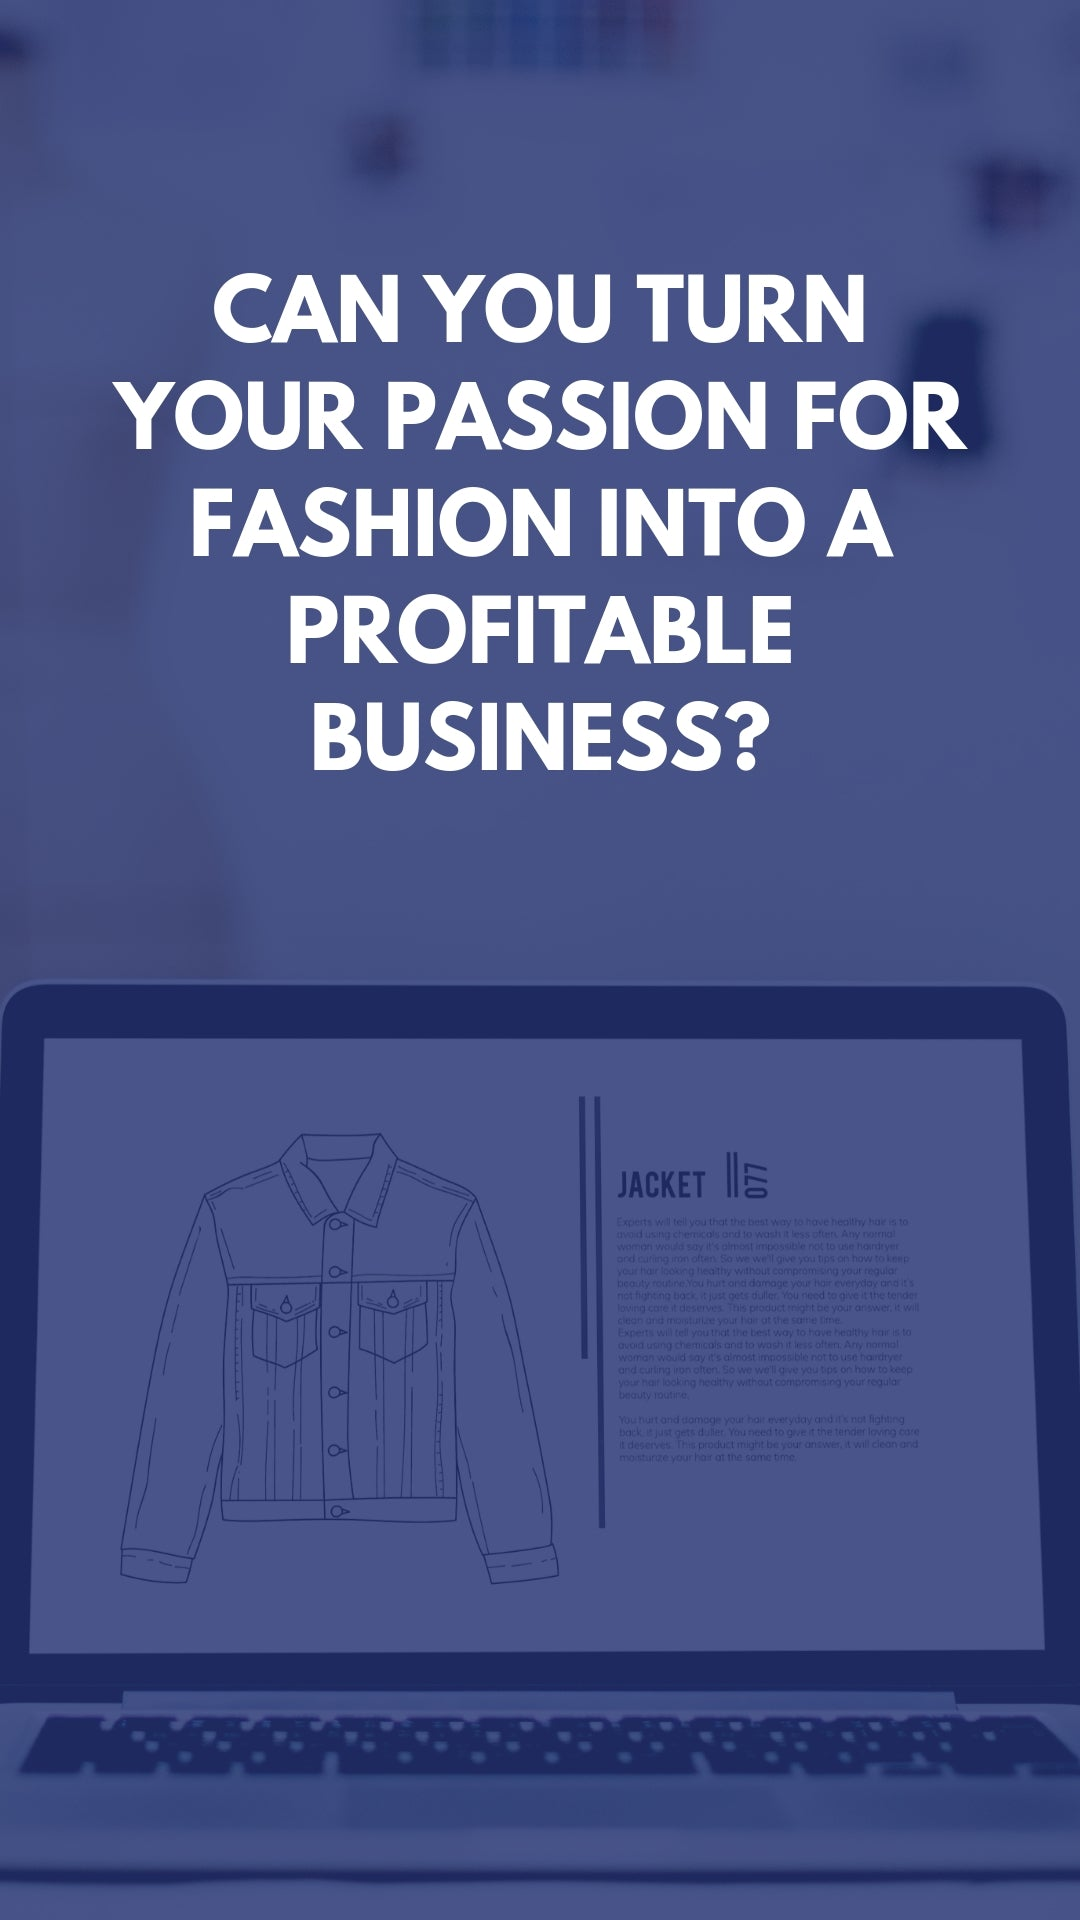 Can You Turn Your Passion for Fashion Into A Profitable Business?